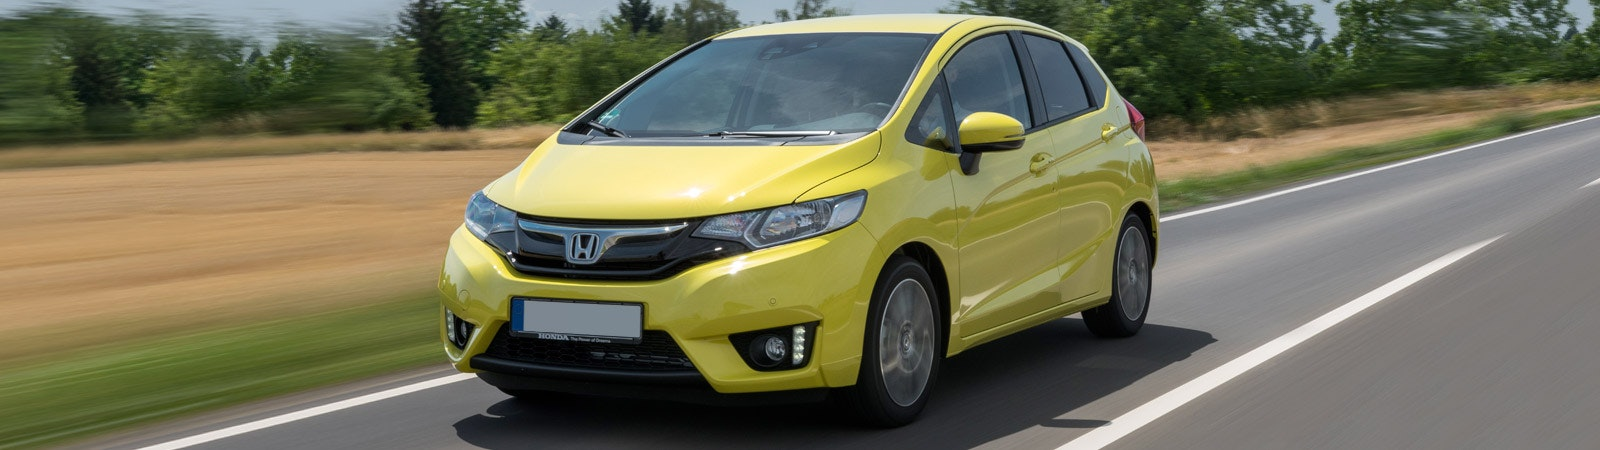 the safest cars on sale with euro ncap data | carwow